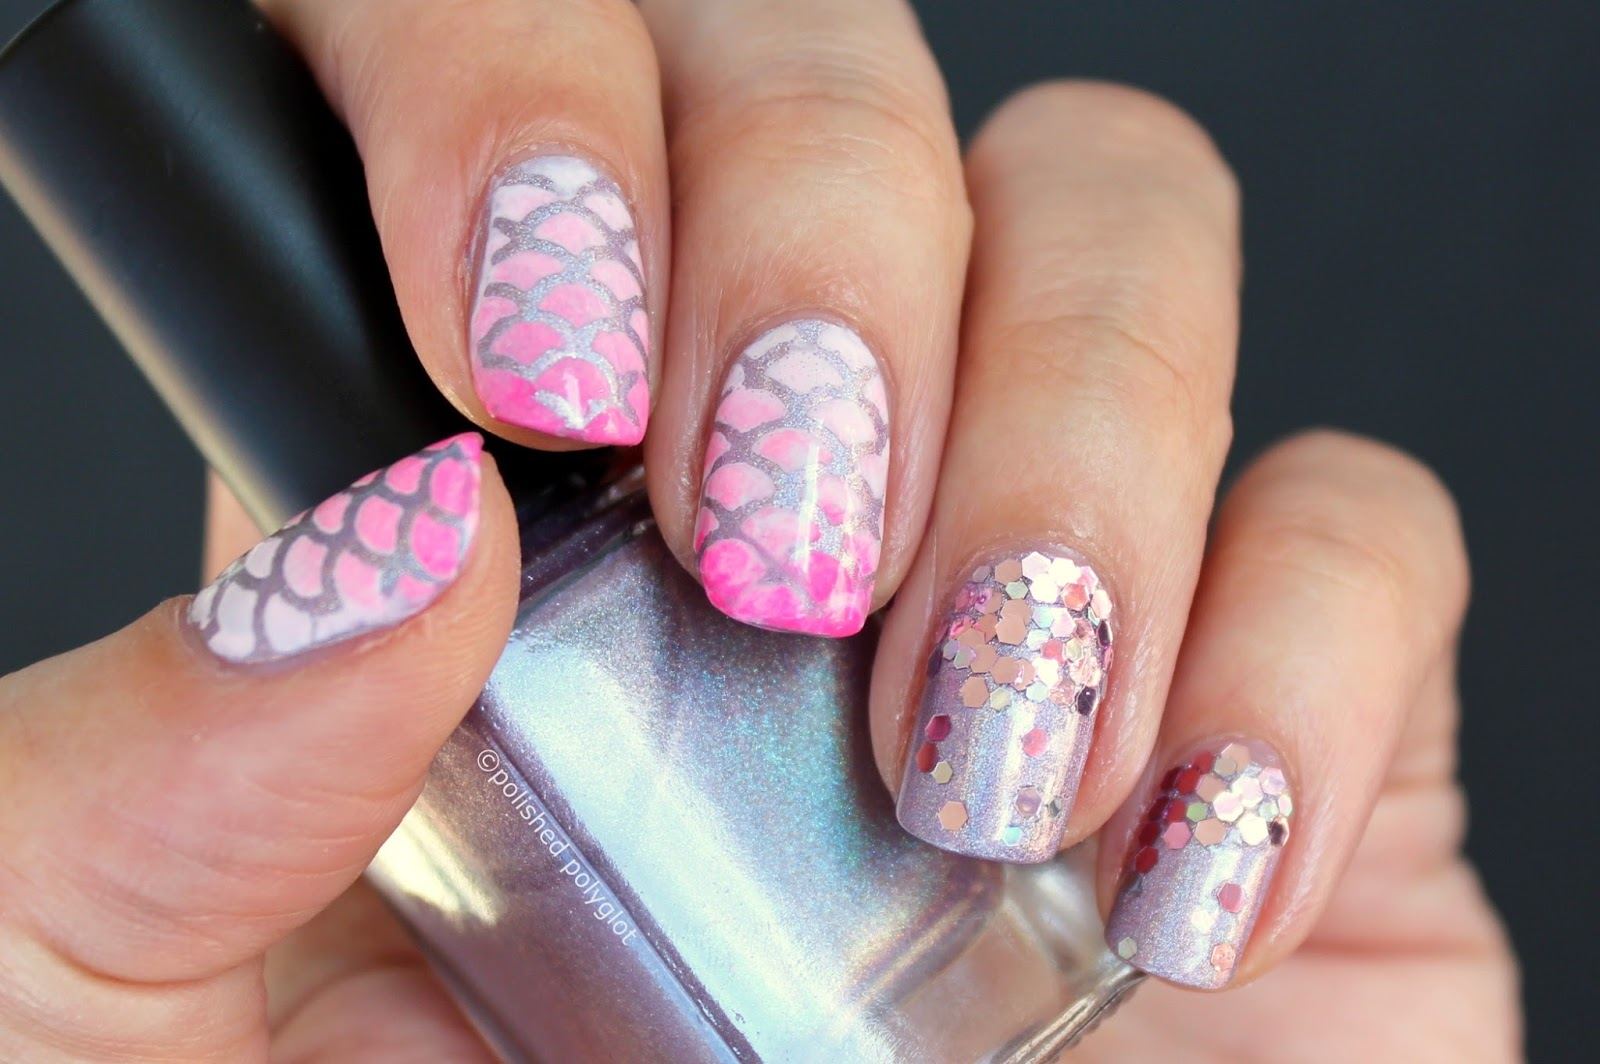 15 Amazing Nail Art Ideas Created With Pink And Lilac Nail